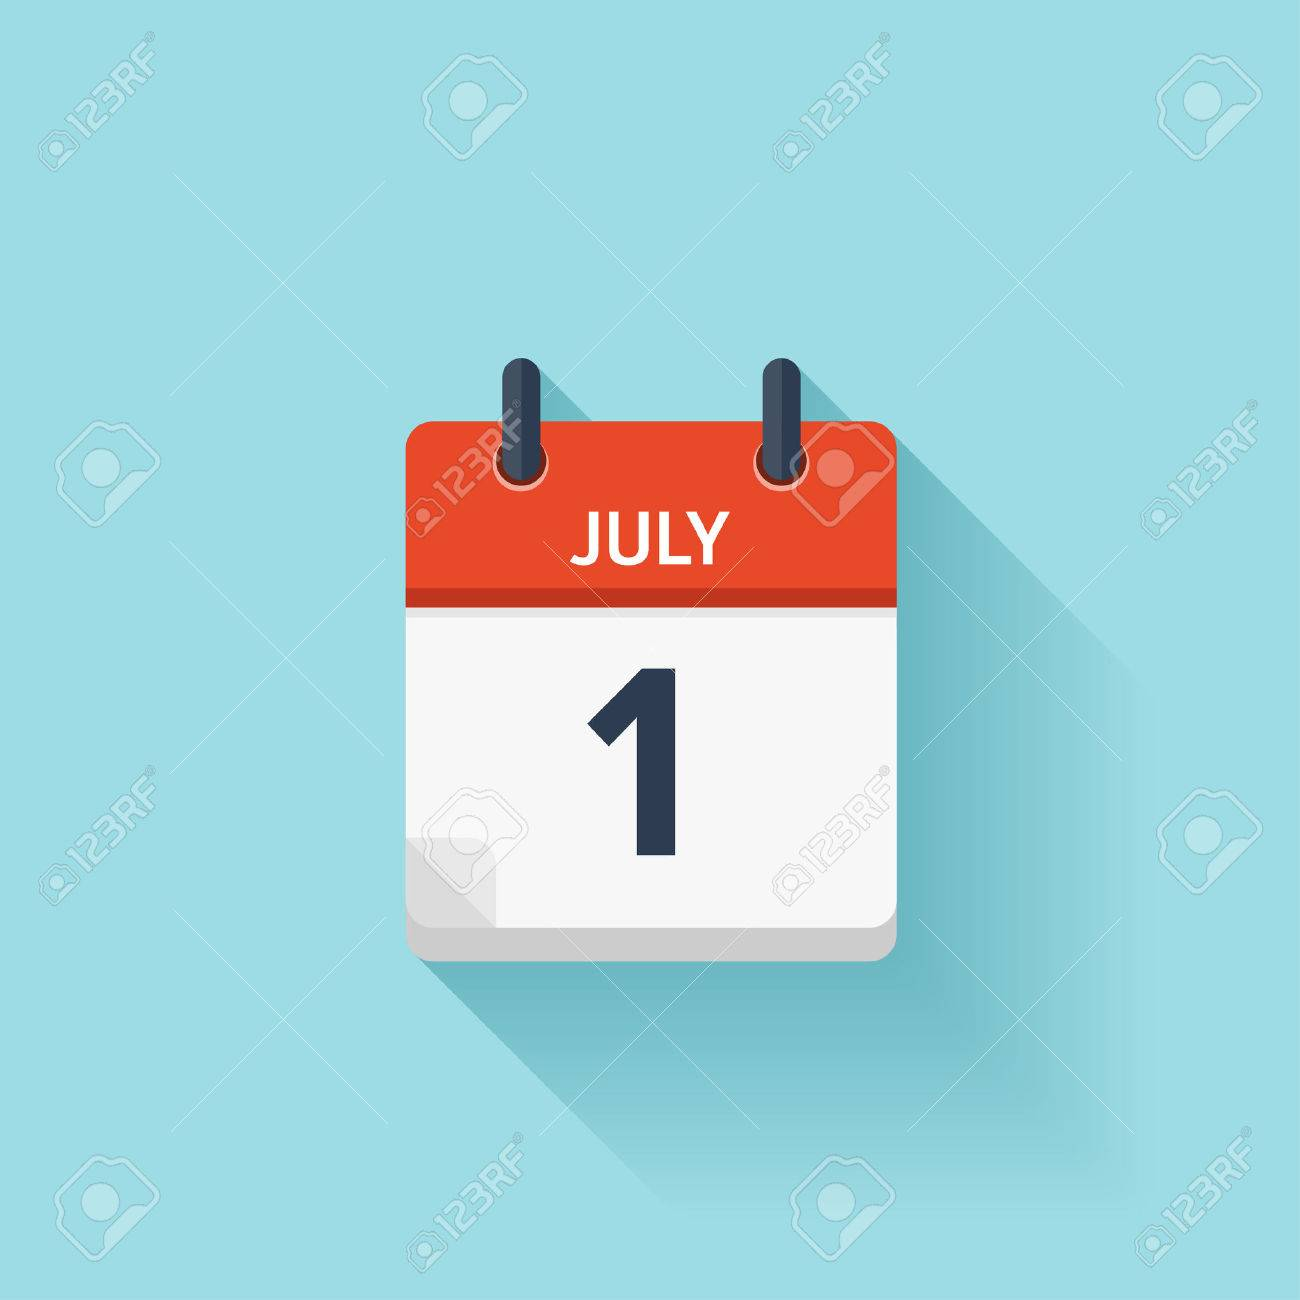 July 1. Vector flat daily calendar icon. Date and time, day, month. Holiday. - 54047616